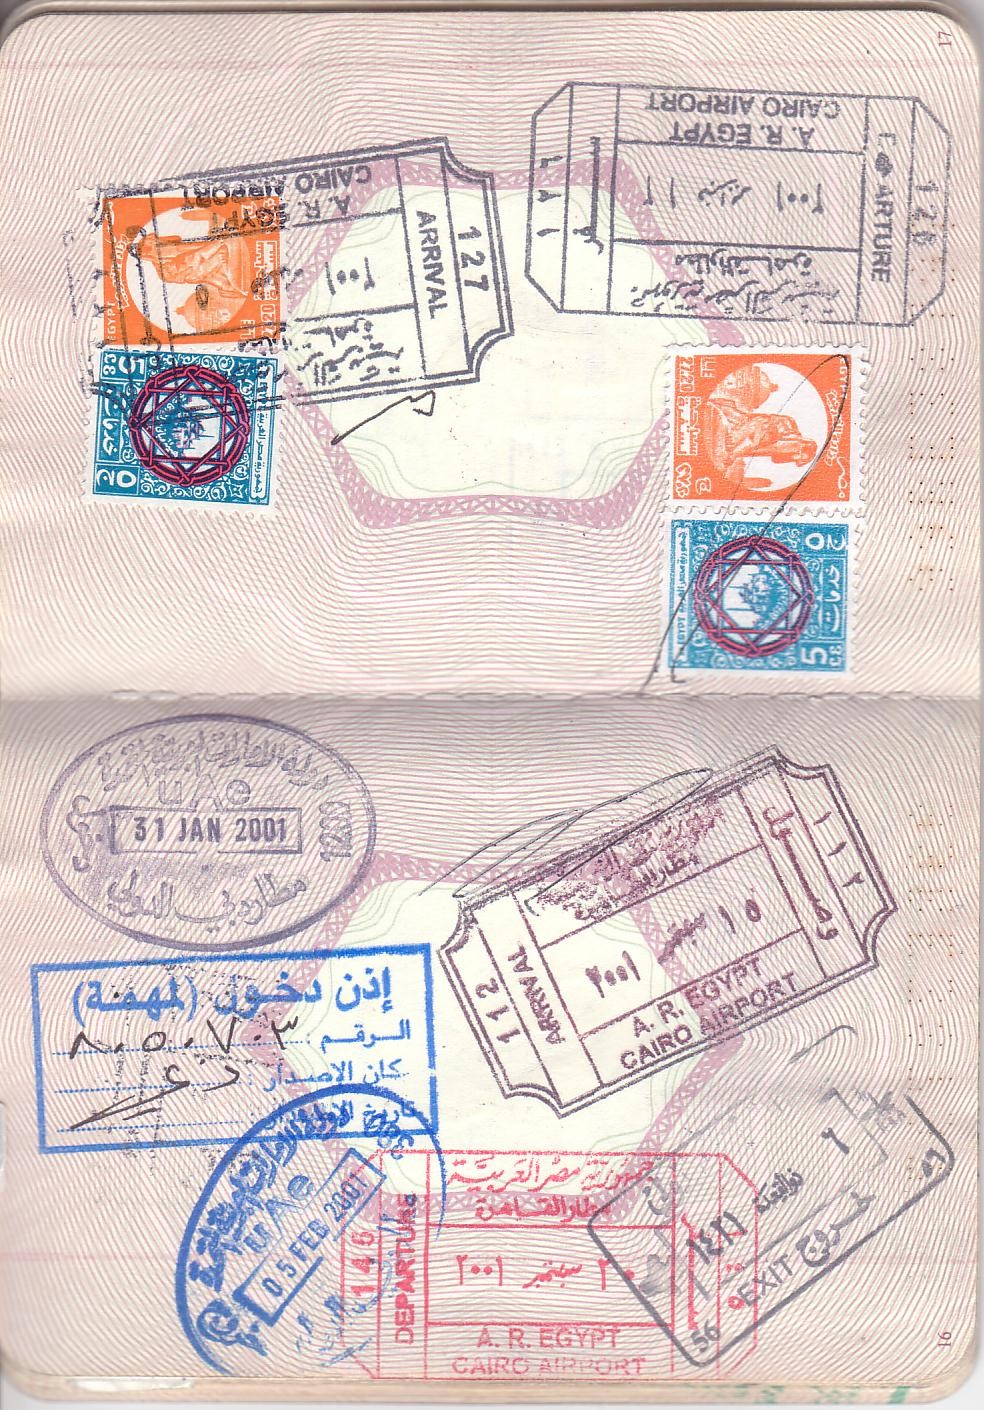 Studying Abroad: Paperwork, Passports and Photos